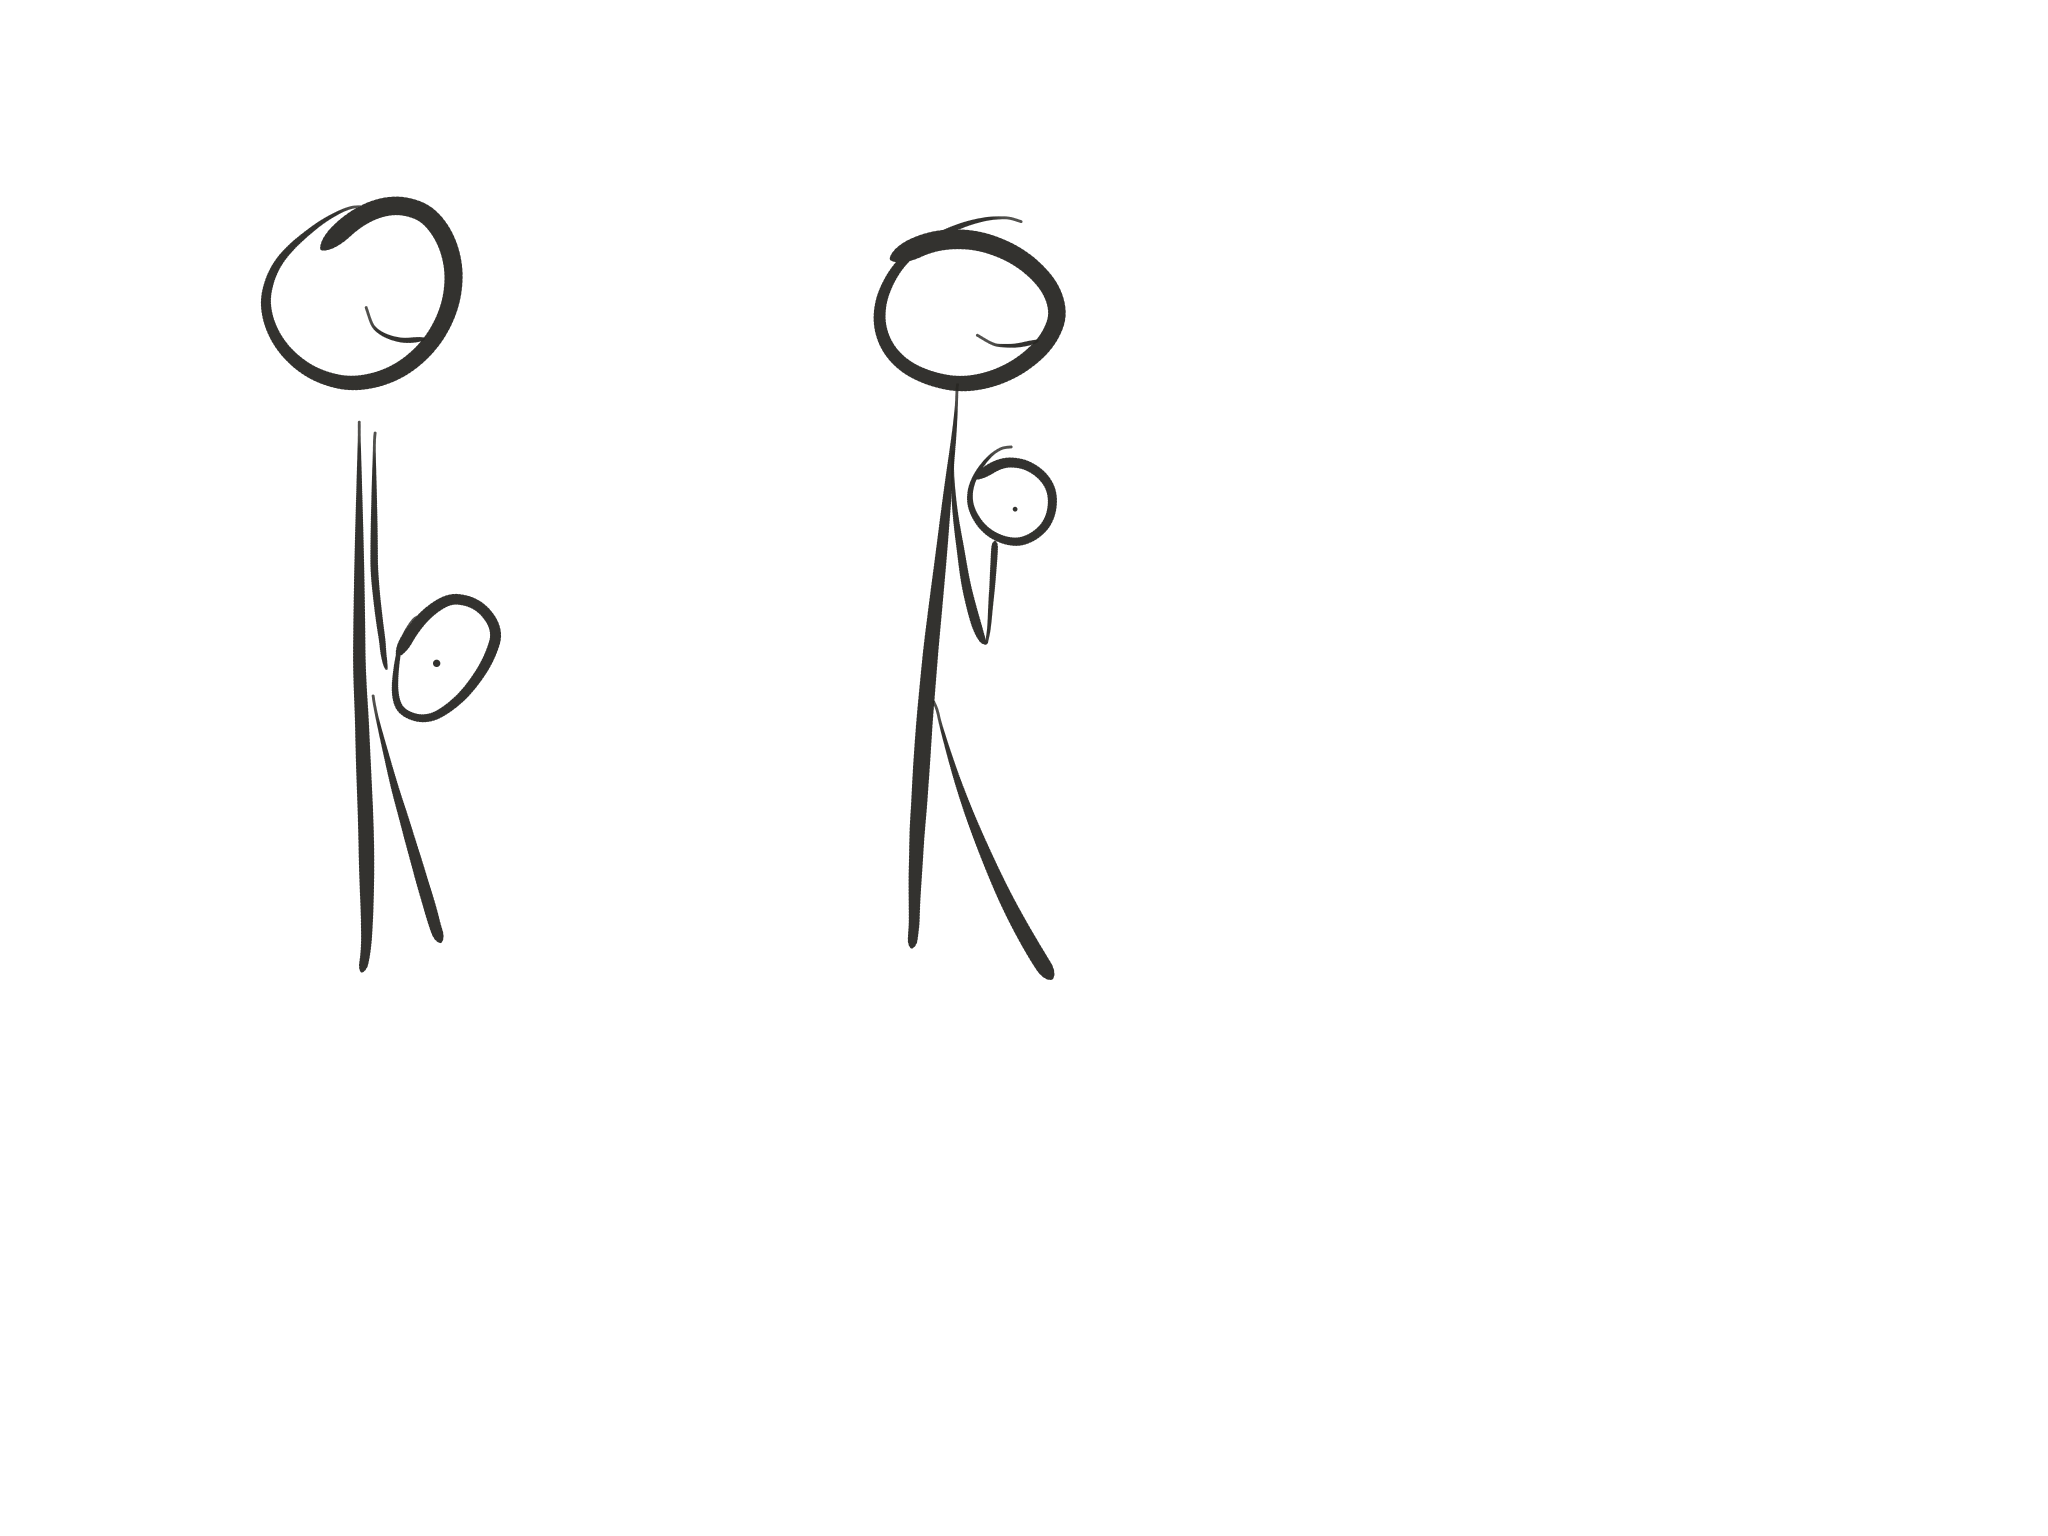 Stick figure diagram, barbell curl